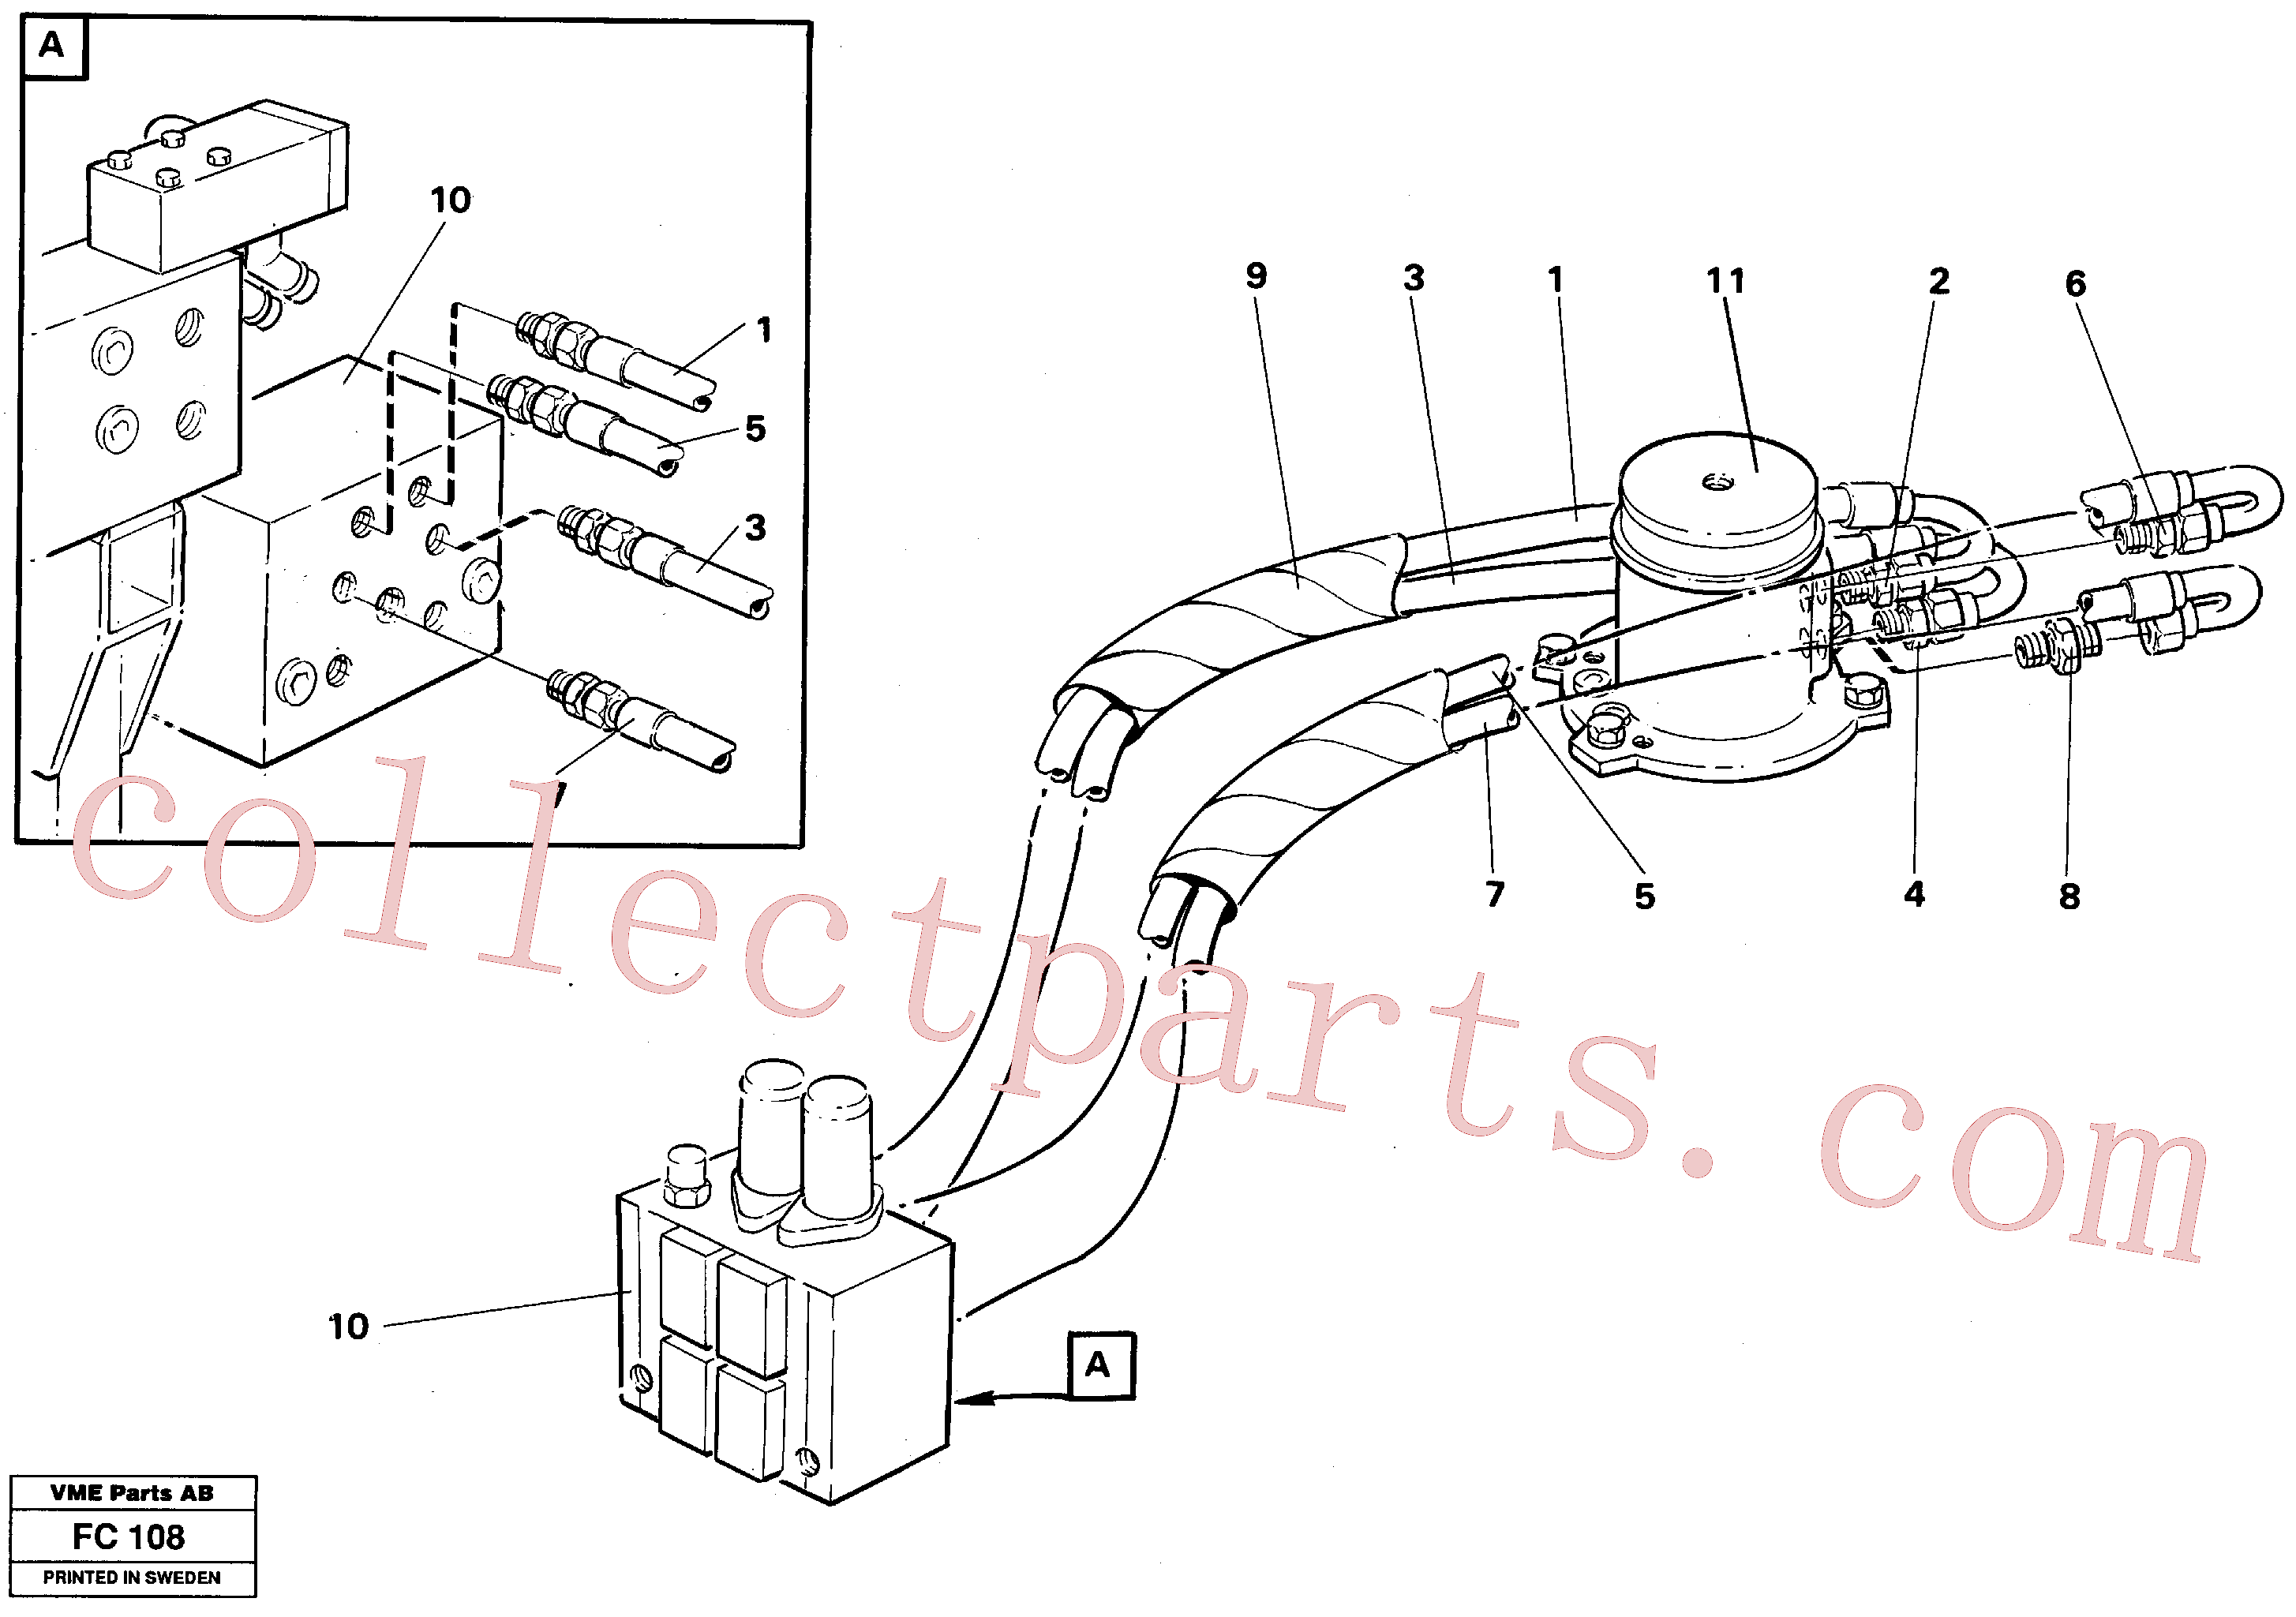 VOE14251421 for Volvo Hydraulic system, transport in uppercarrige(FC108 assembly)